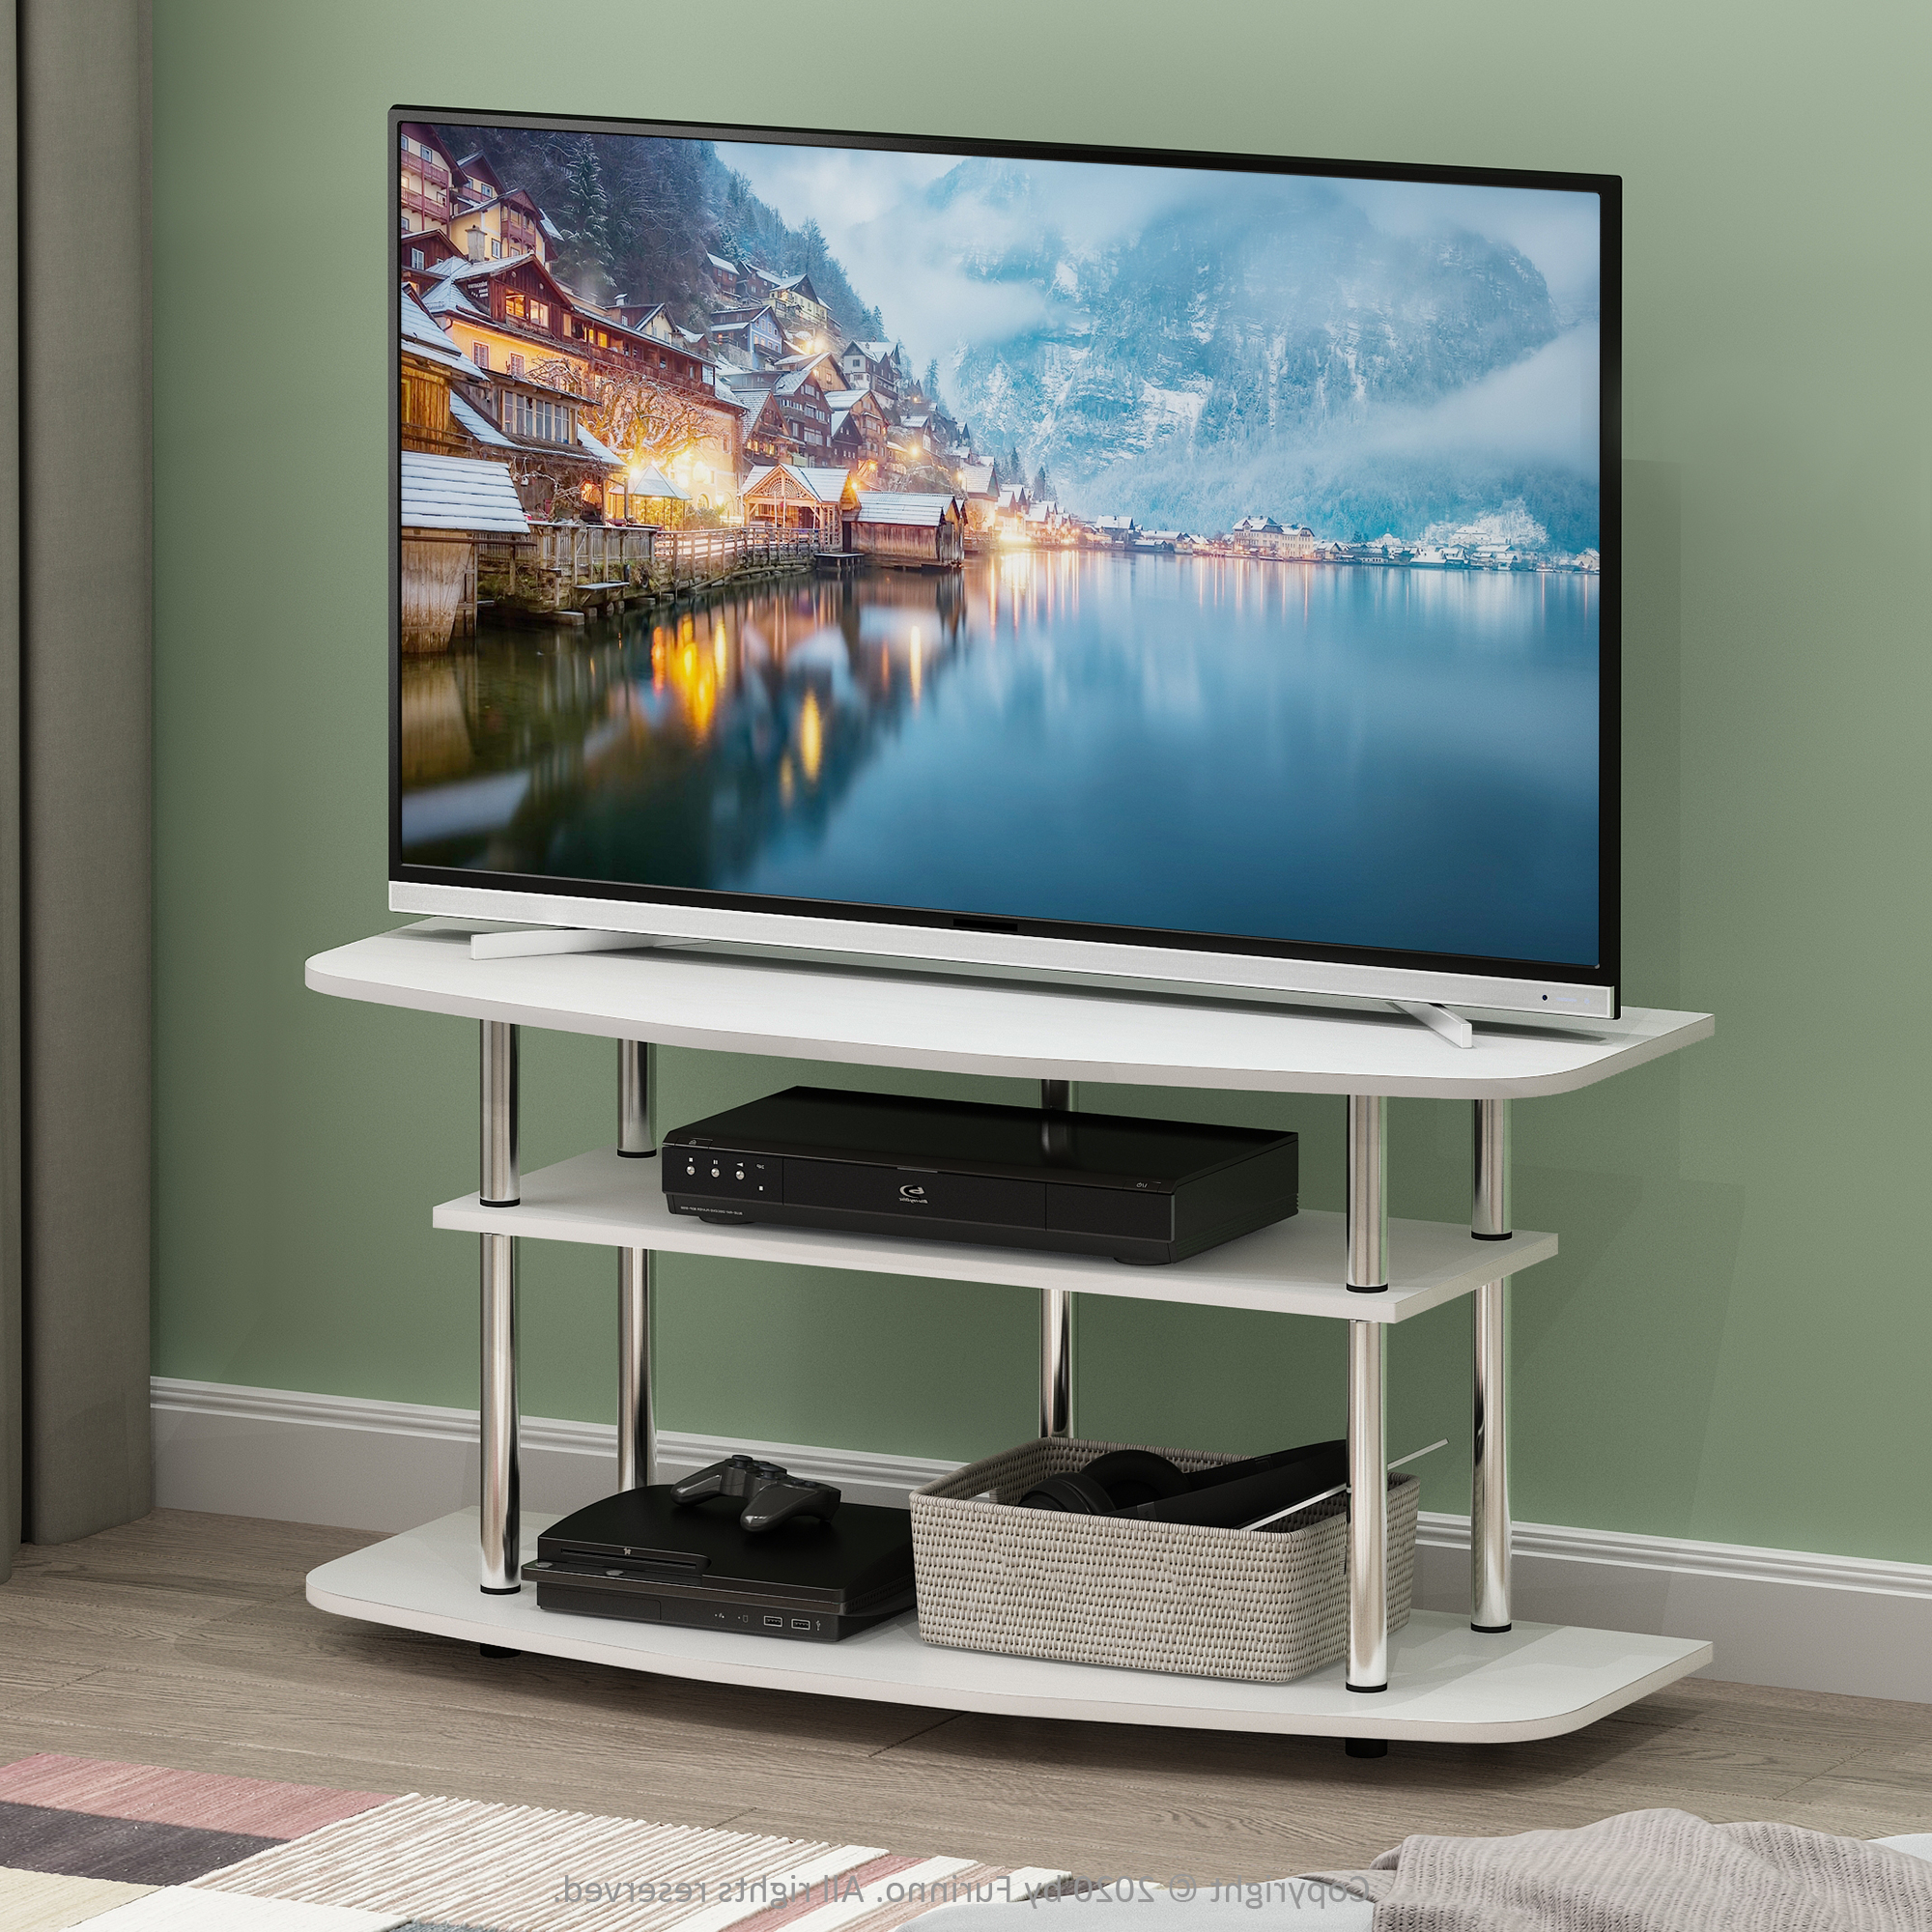 Furinno Frans Turn N Tube 3 Tier Tv Stand For Tv Up To 46 Pertaining To Furinno Turn N Tube No Tool 3 Tier Entertainment Tv Stands (View 2 of 20)